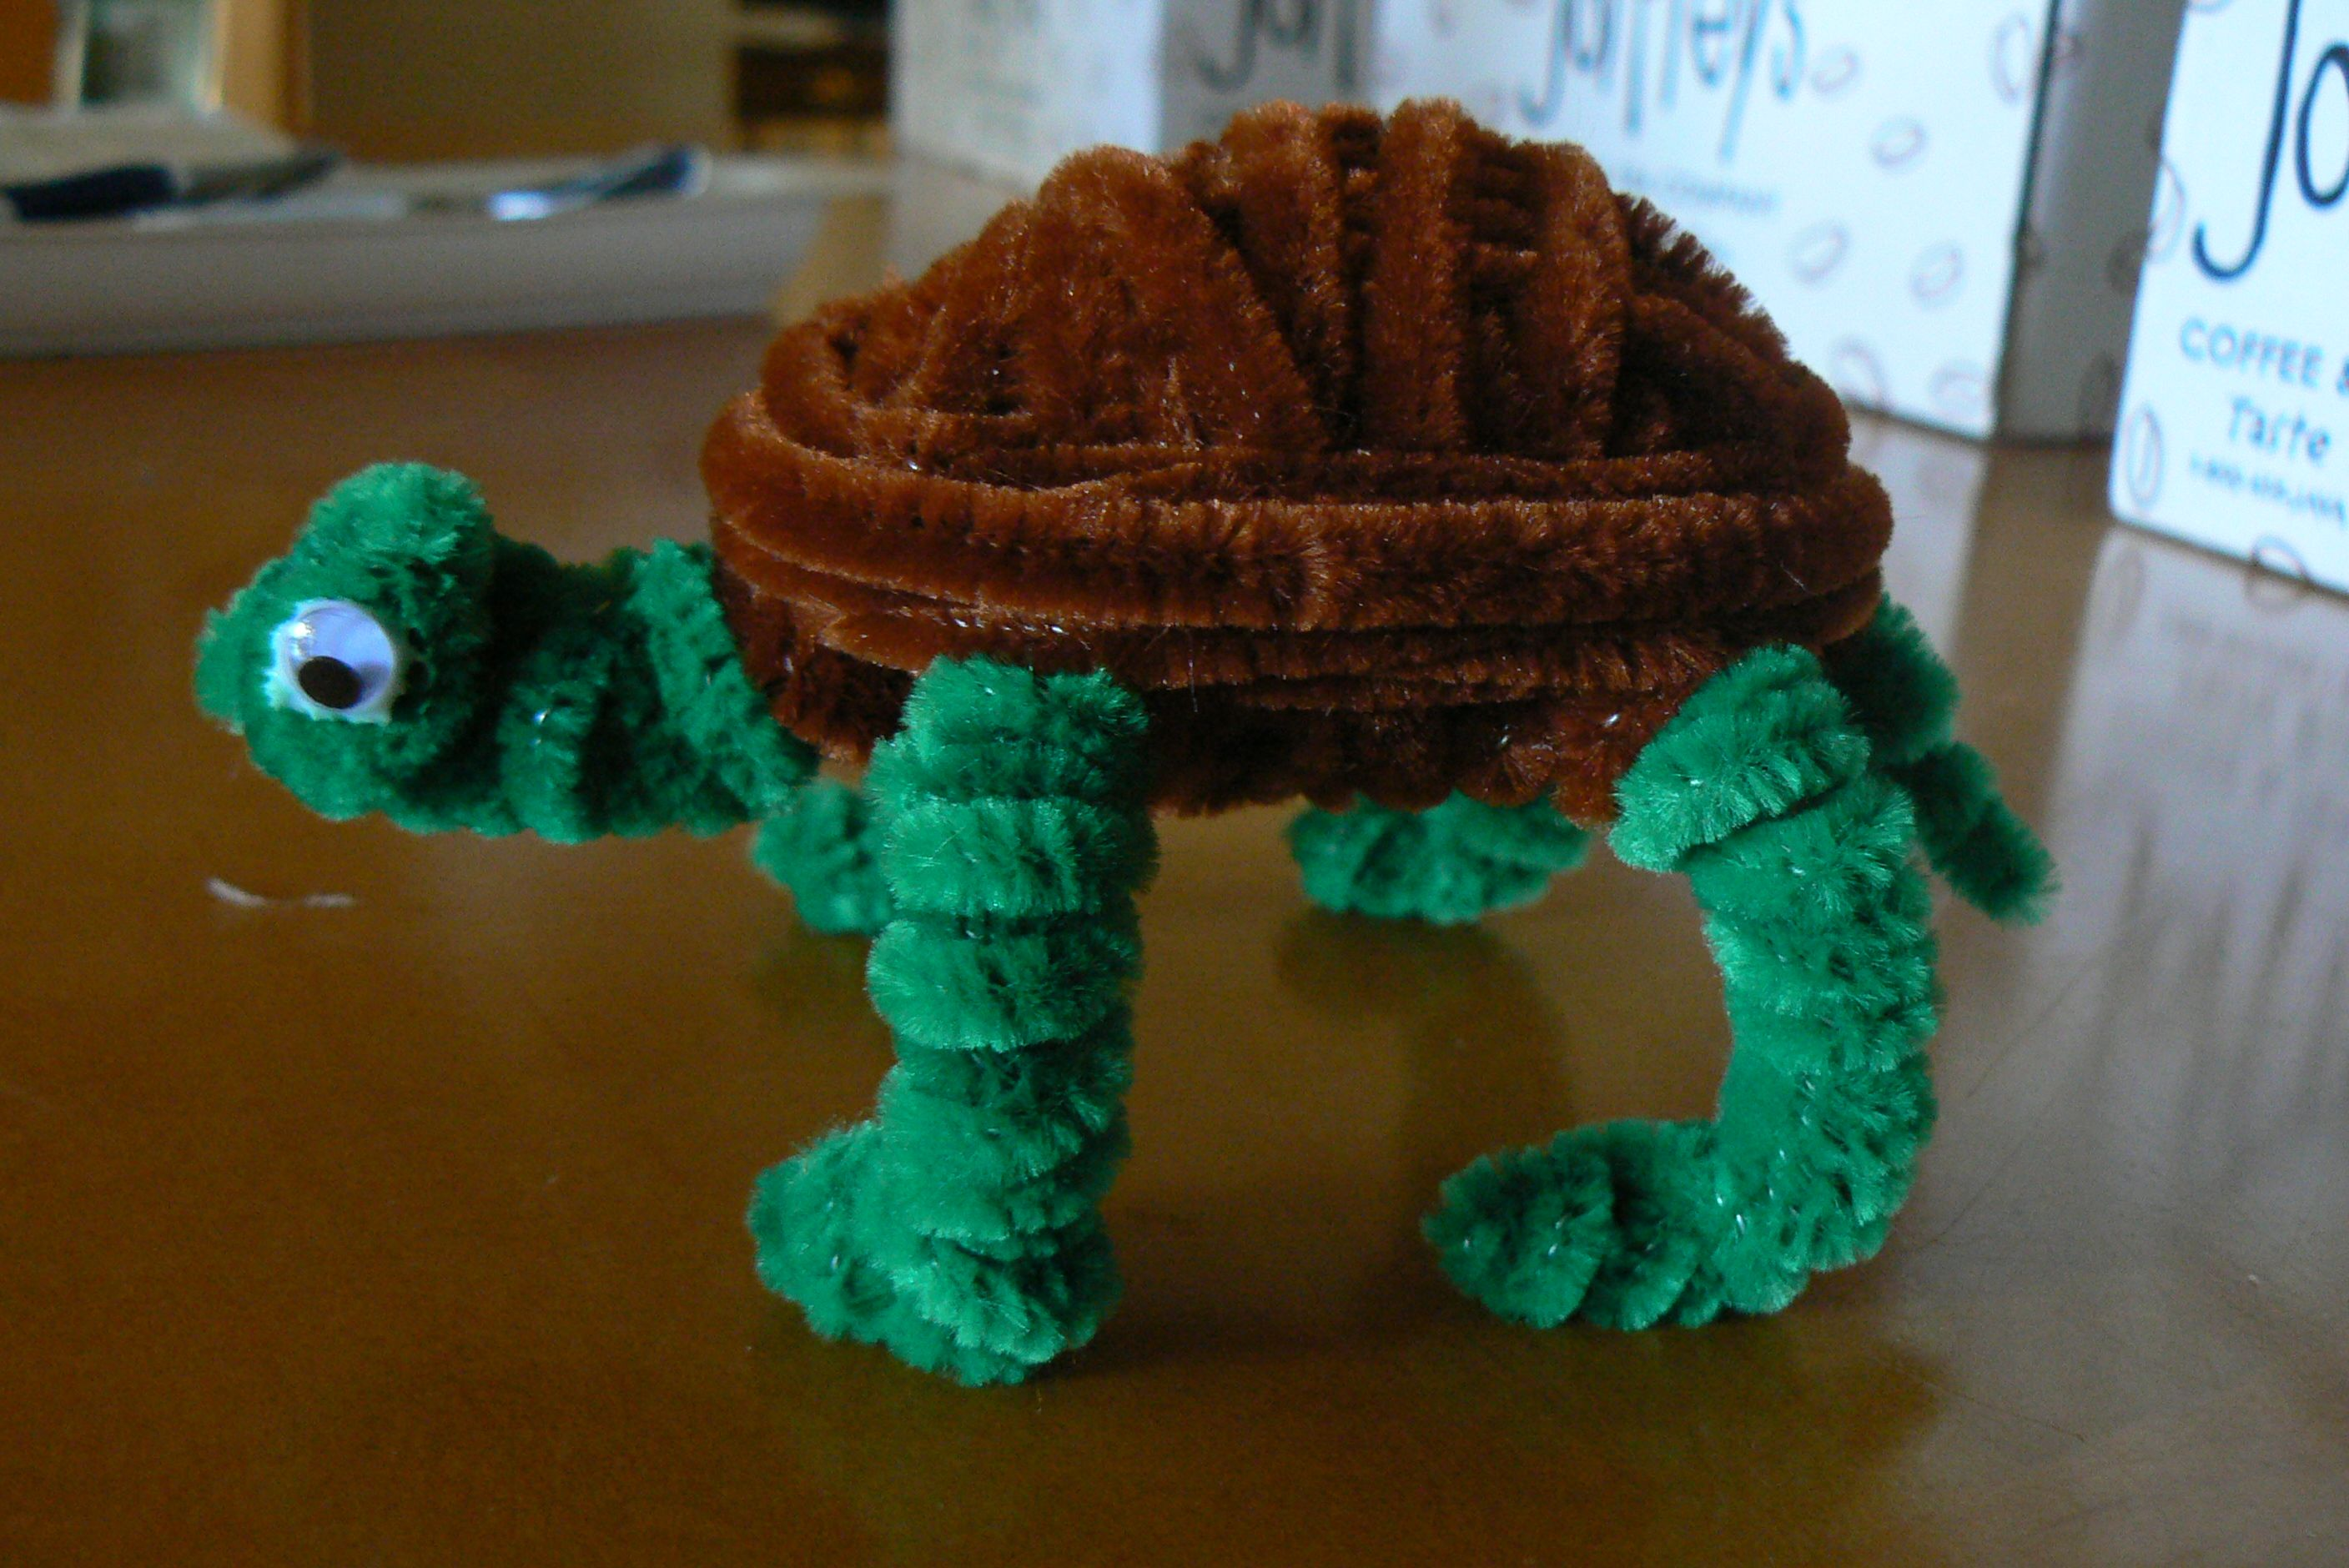 Turtle | pipe cleaner animals | Pinterest | Turtle, Pipes ... - photo#10